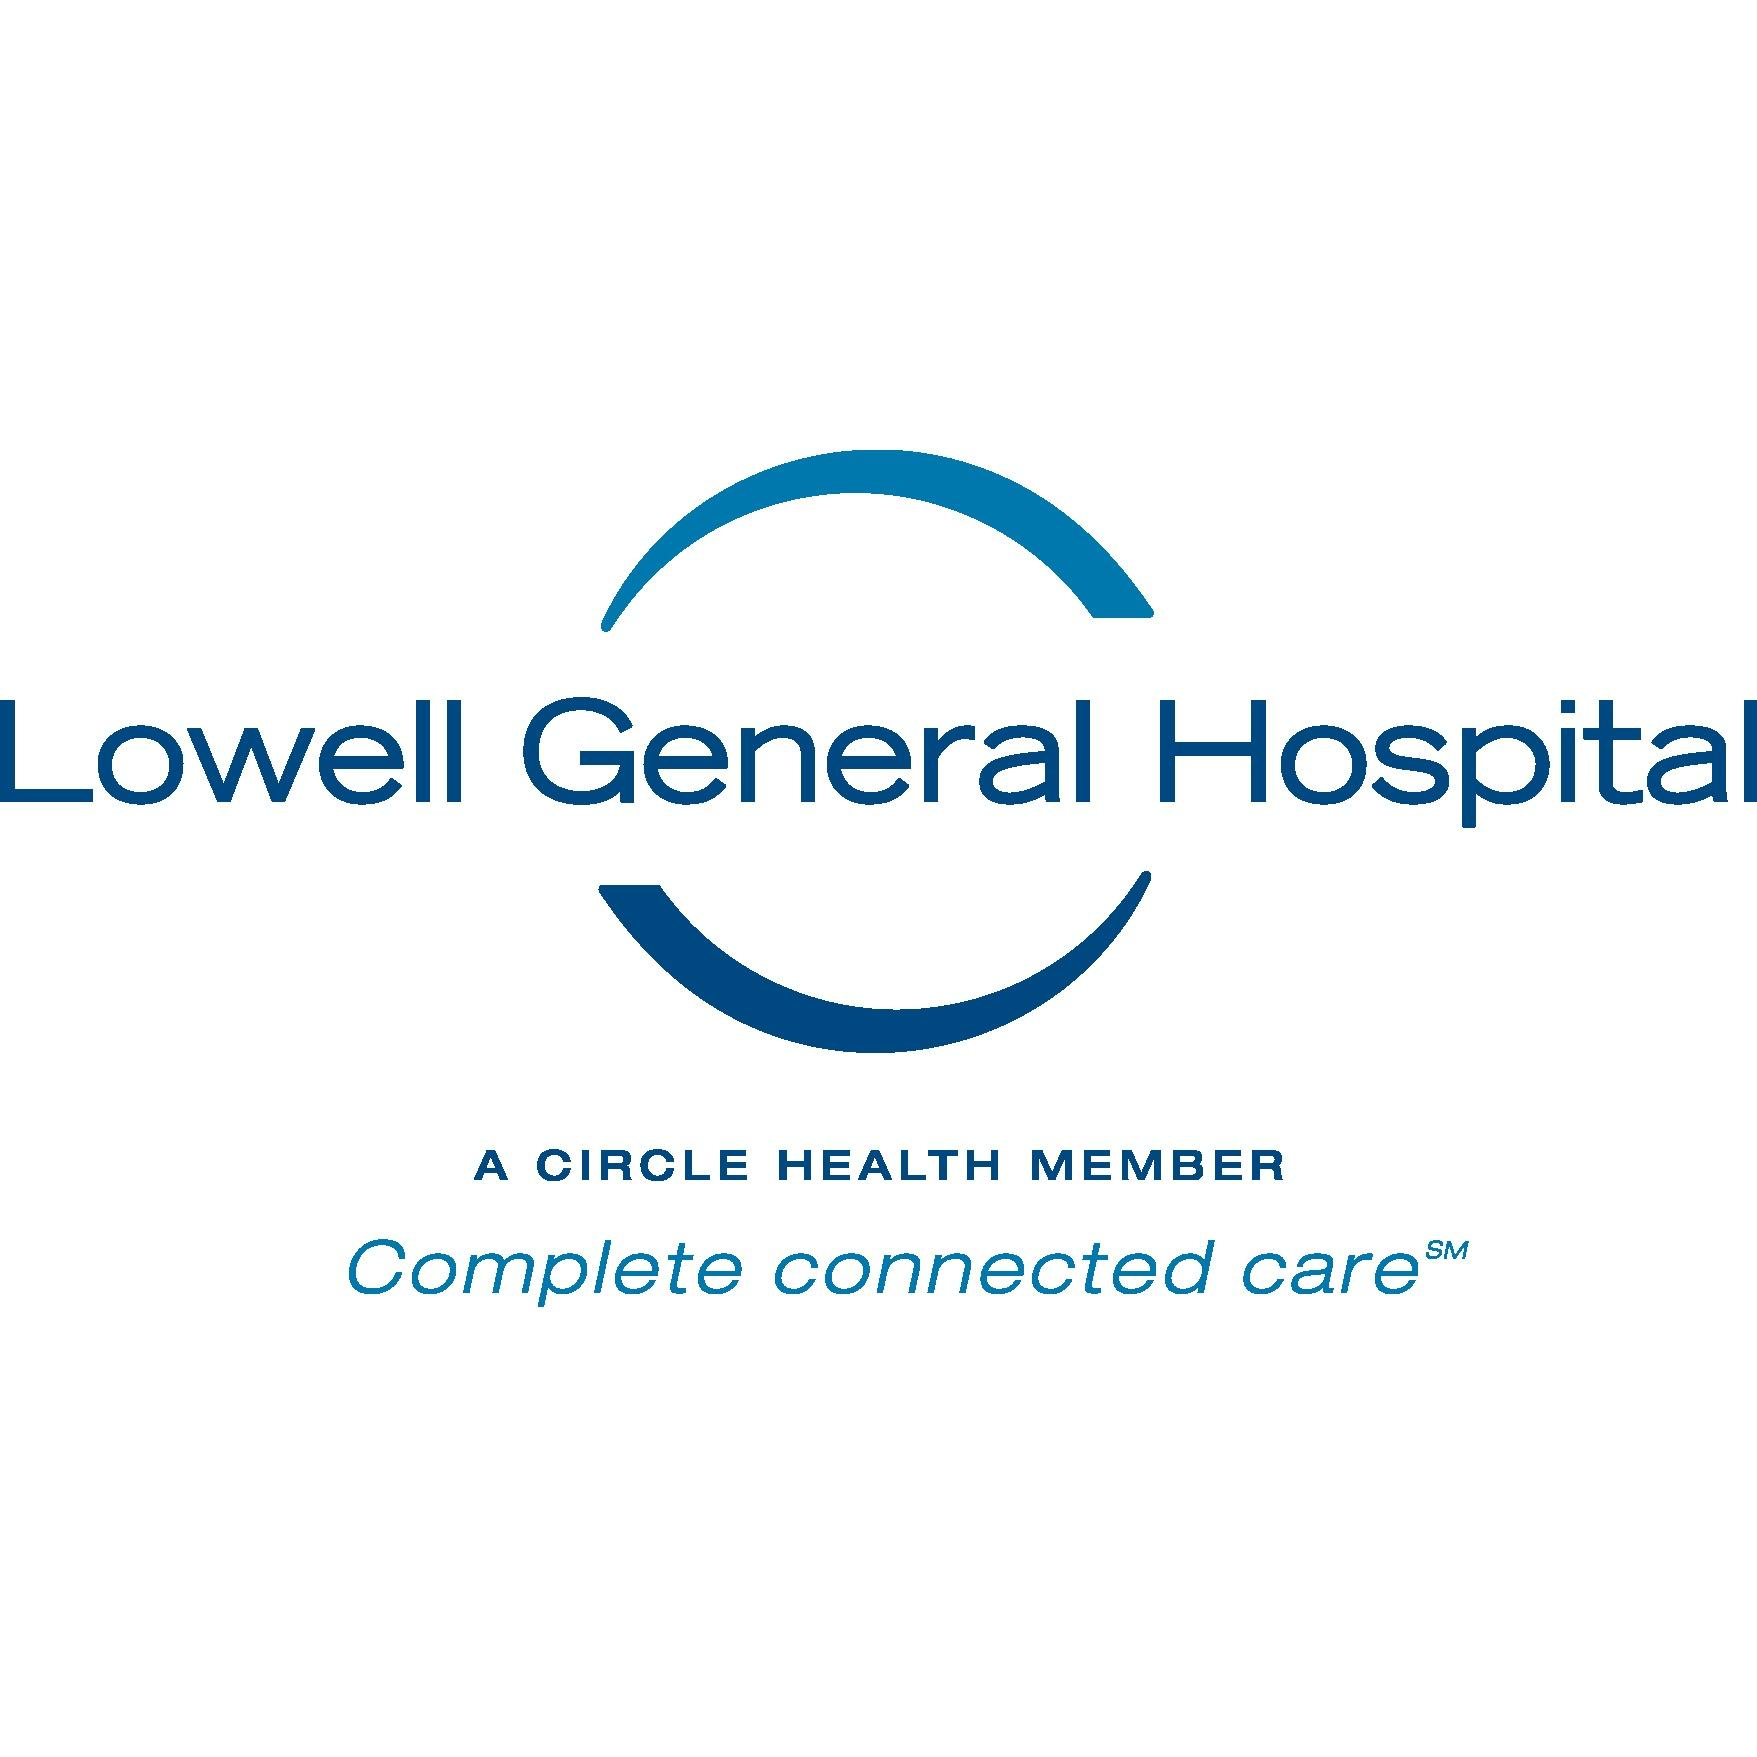 Lowell General Hospital Patient Service Center